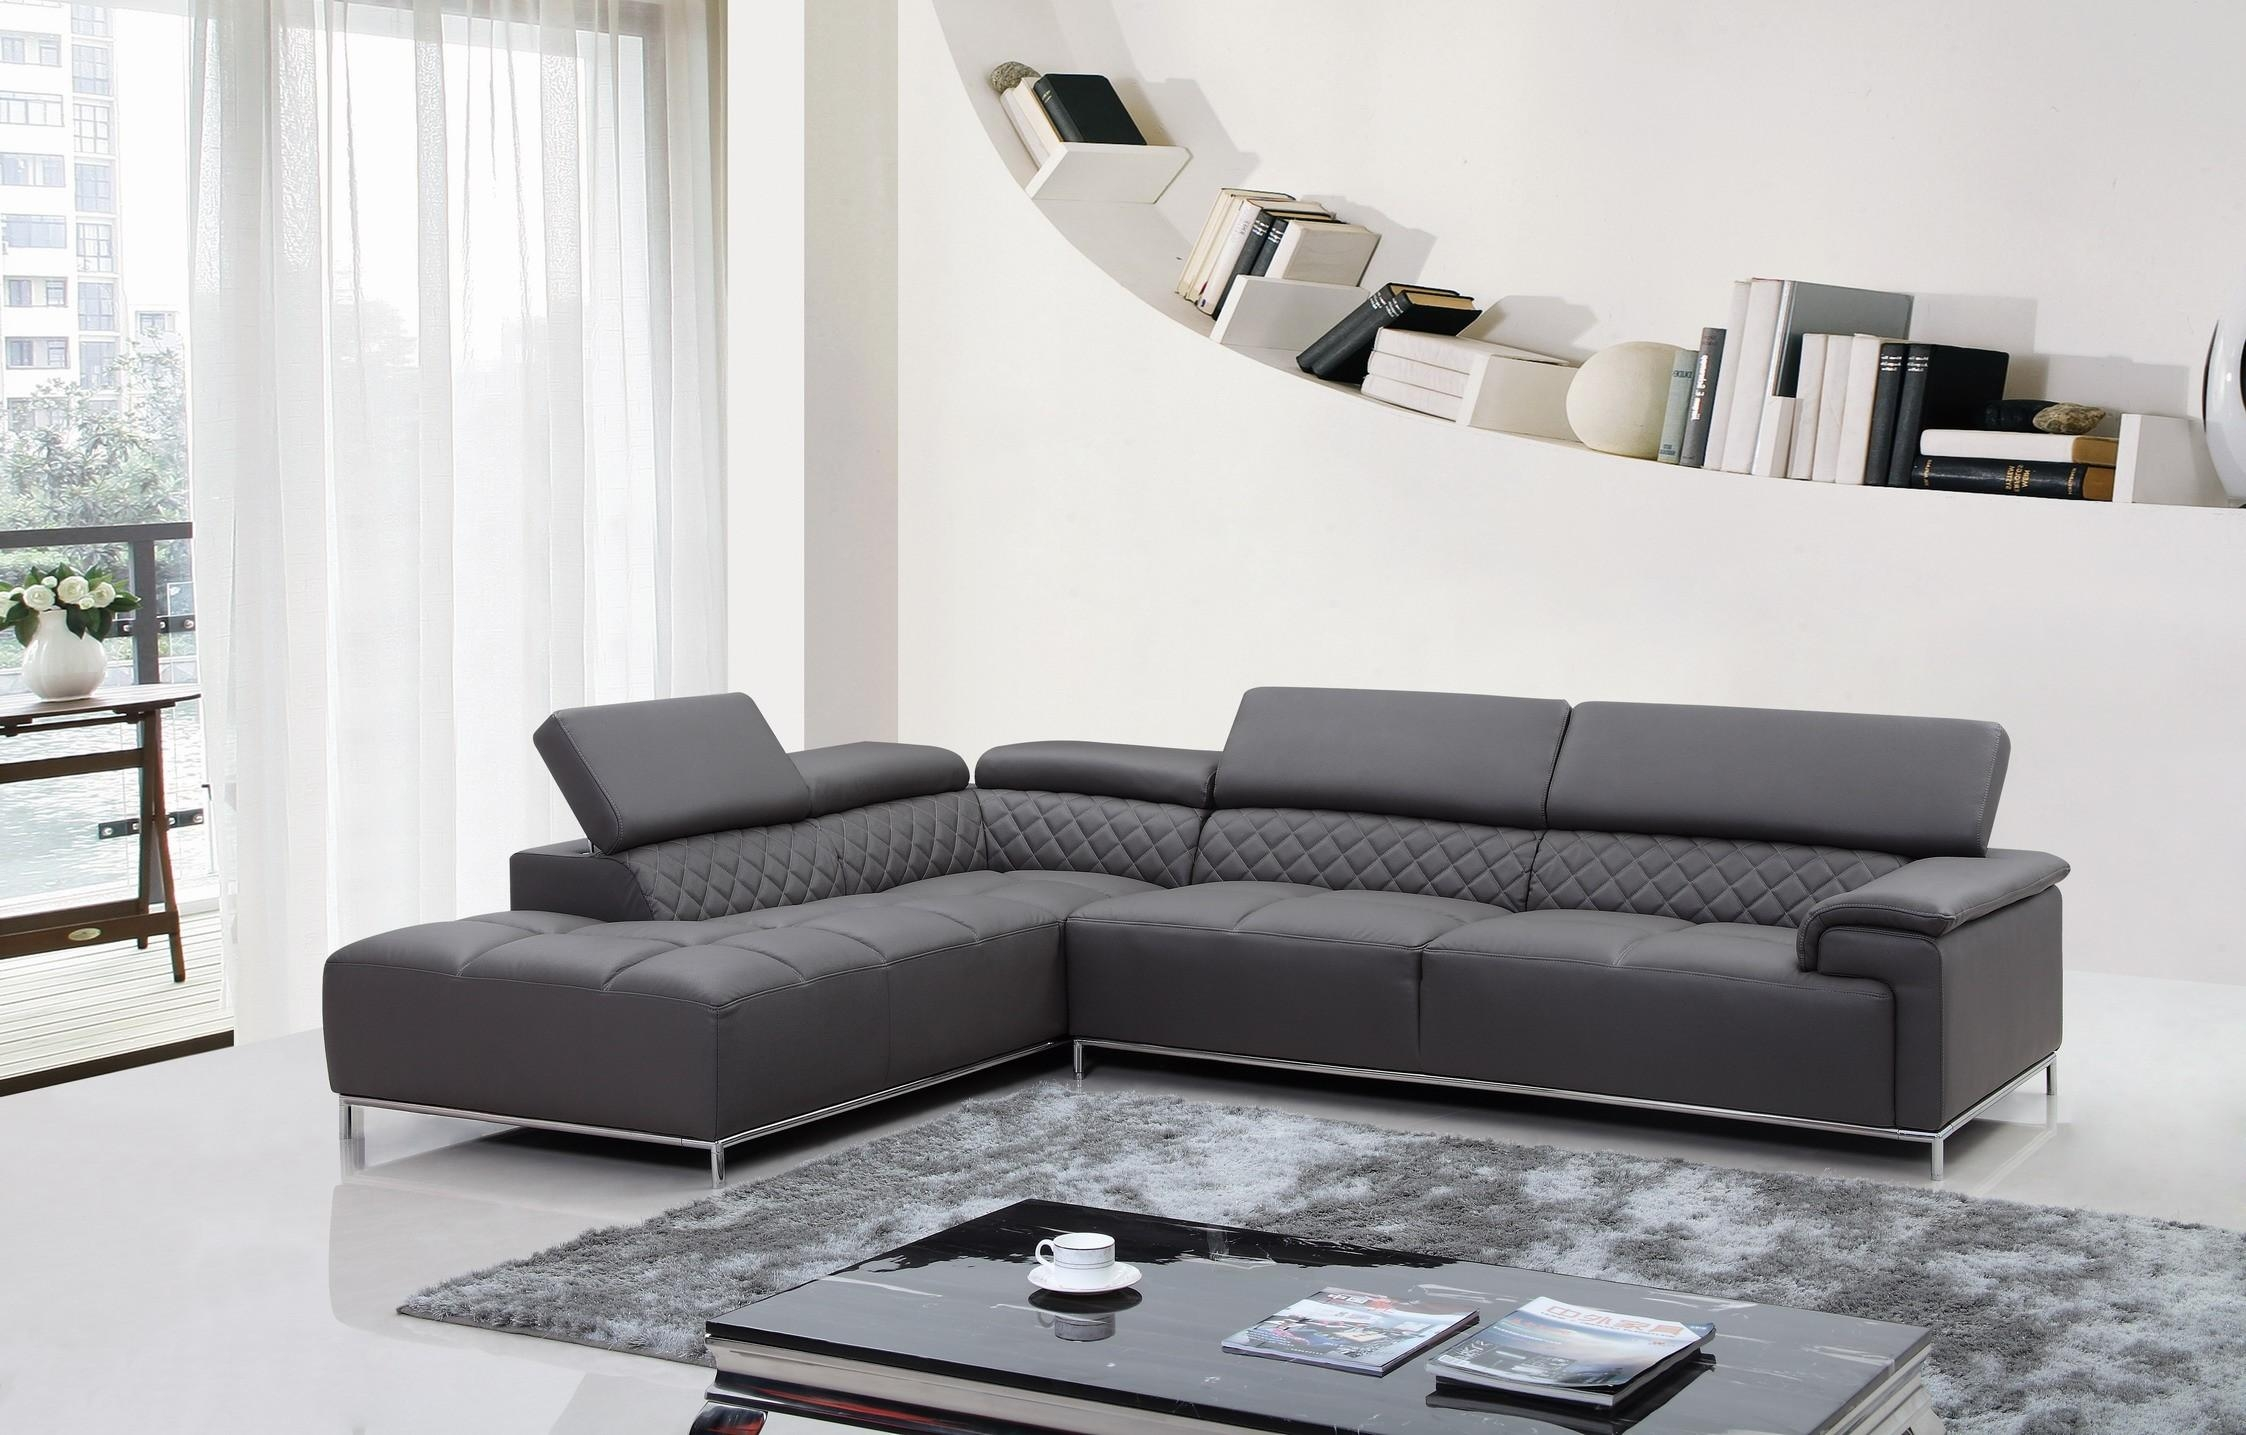 21 inspirations modern sofas sectionals sofa ideas. Black Bedroom Furniture Sets. Home Design Ideas